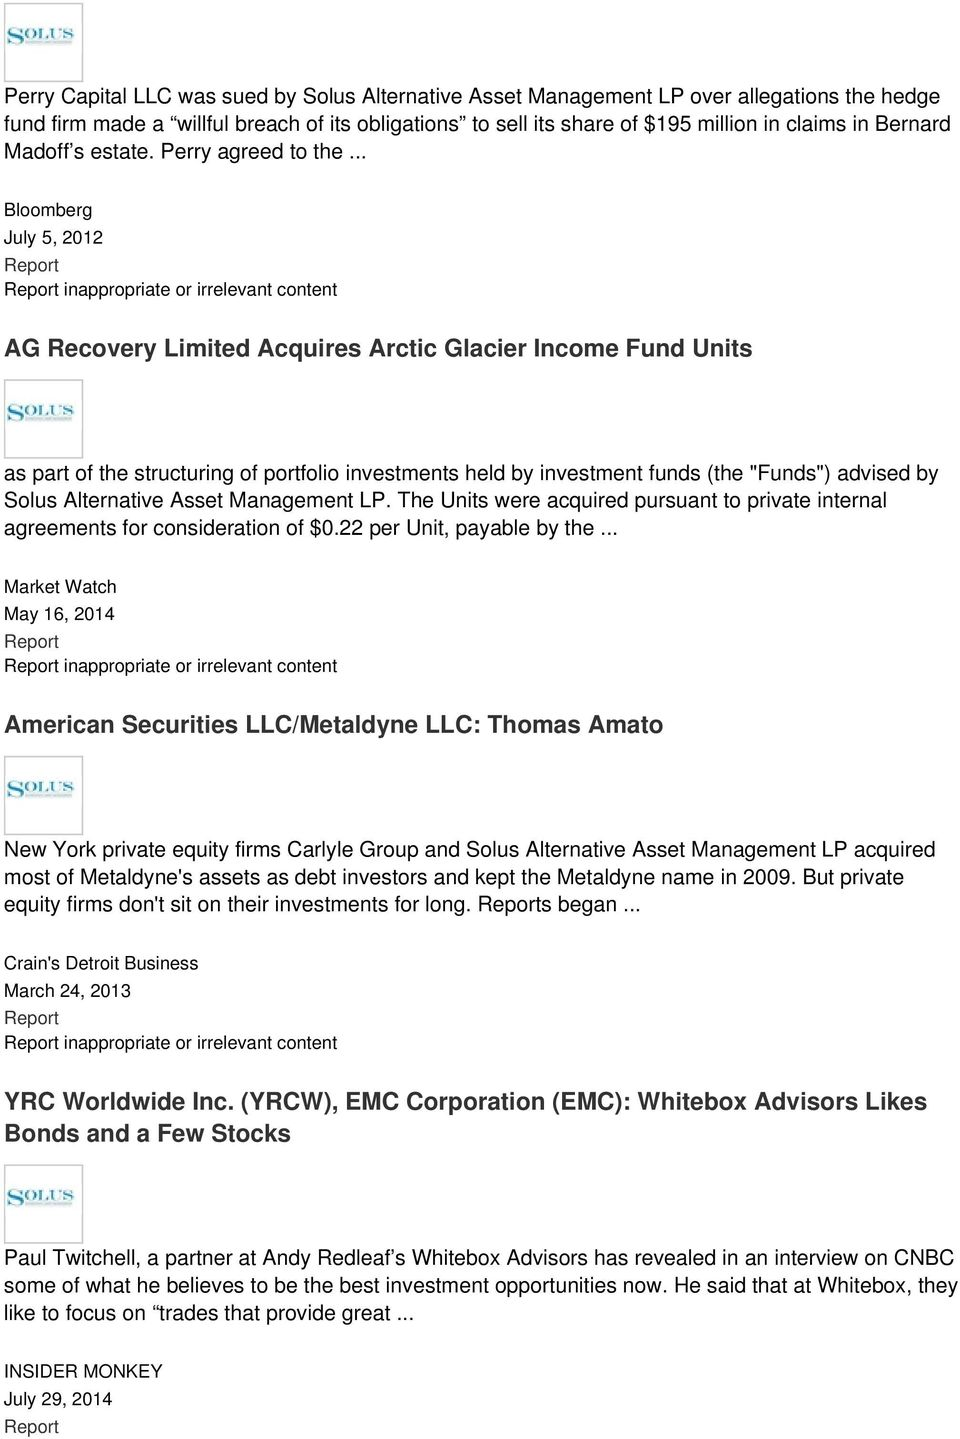 .. July 5, 2012 inappropriate or irrelevant content AG Recovery Limited Acquires Arctic Glacier Income Fund Units as part of the structuring of portfolio investments held by investment funds (the